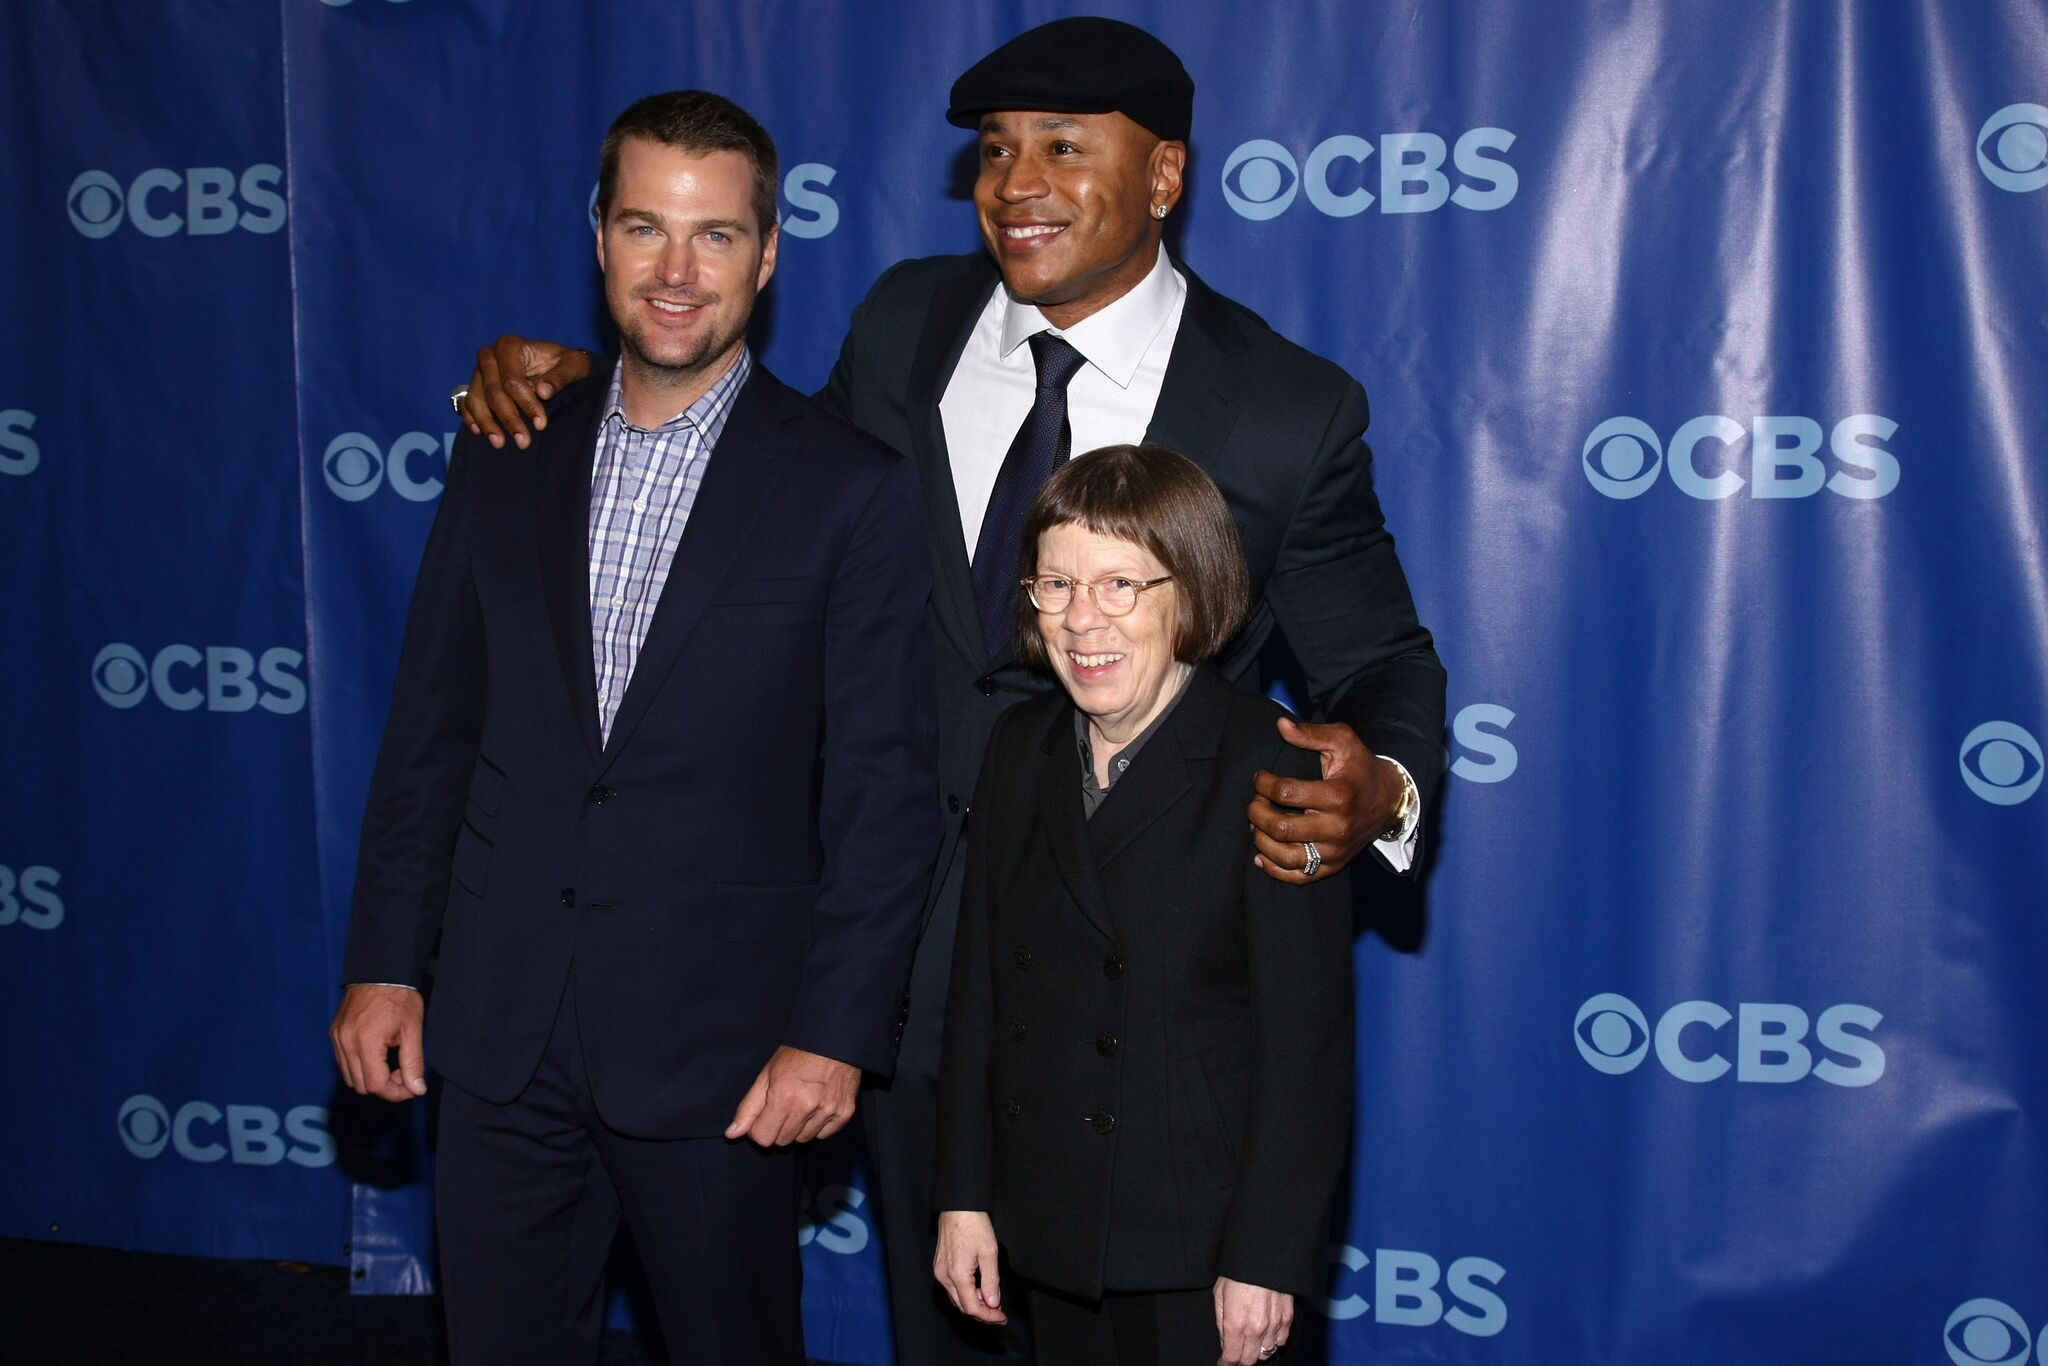 Chris O'Donnell, LL Cool J und Linda Hunt, 2011 CBS Upfront am 18. Mai 2011 | Quelle: Getty Images